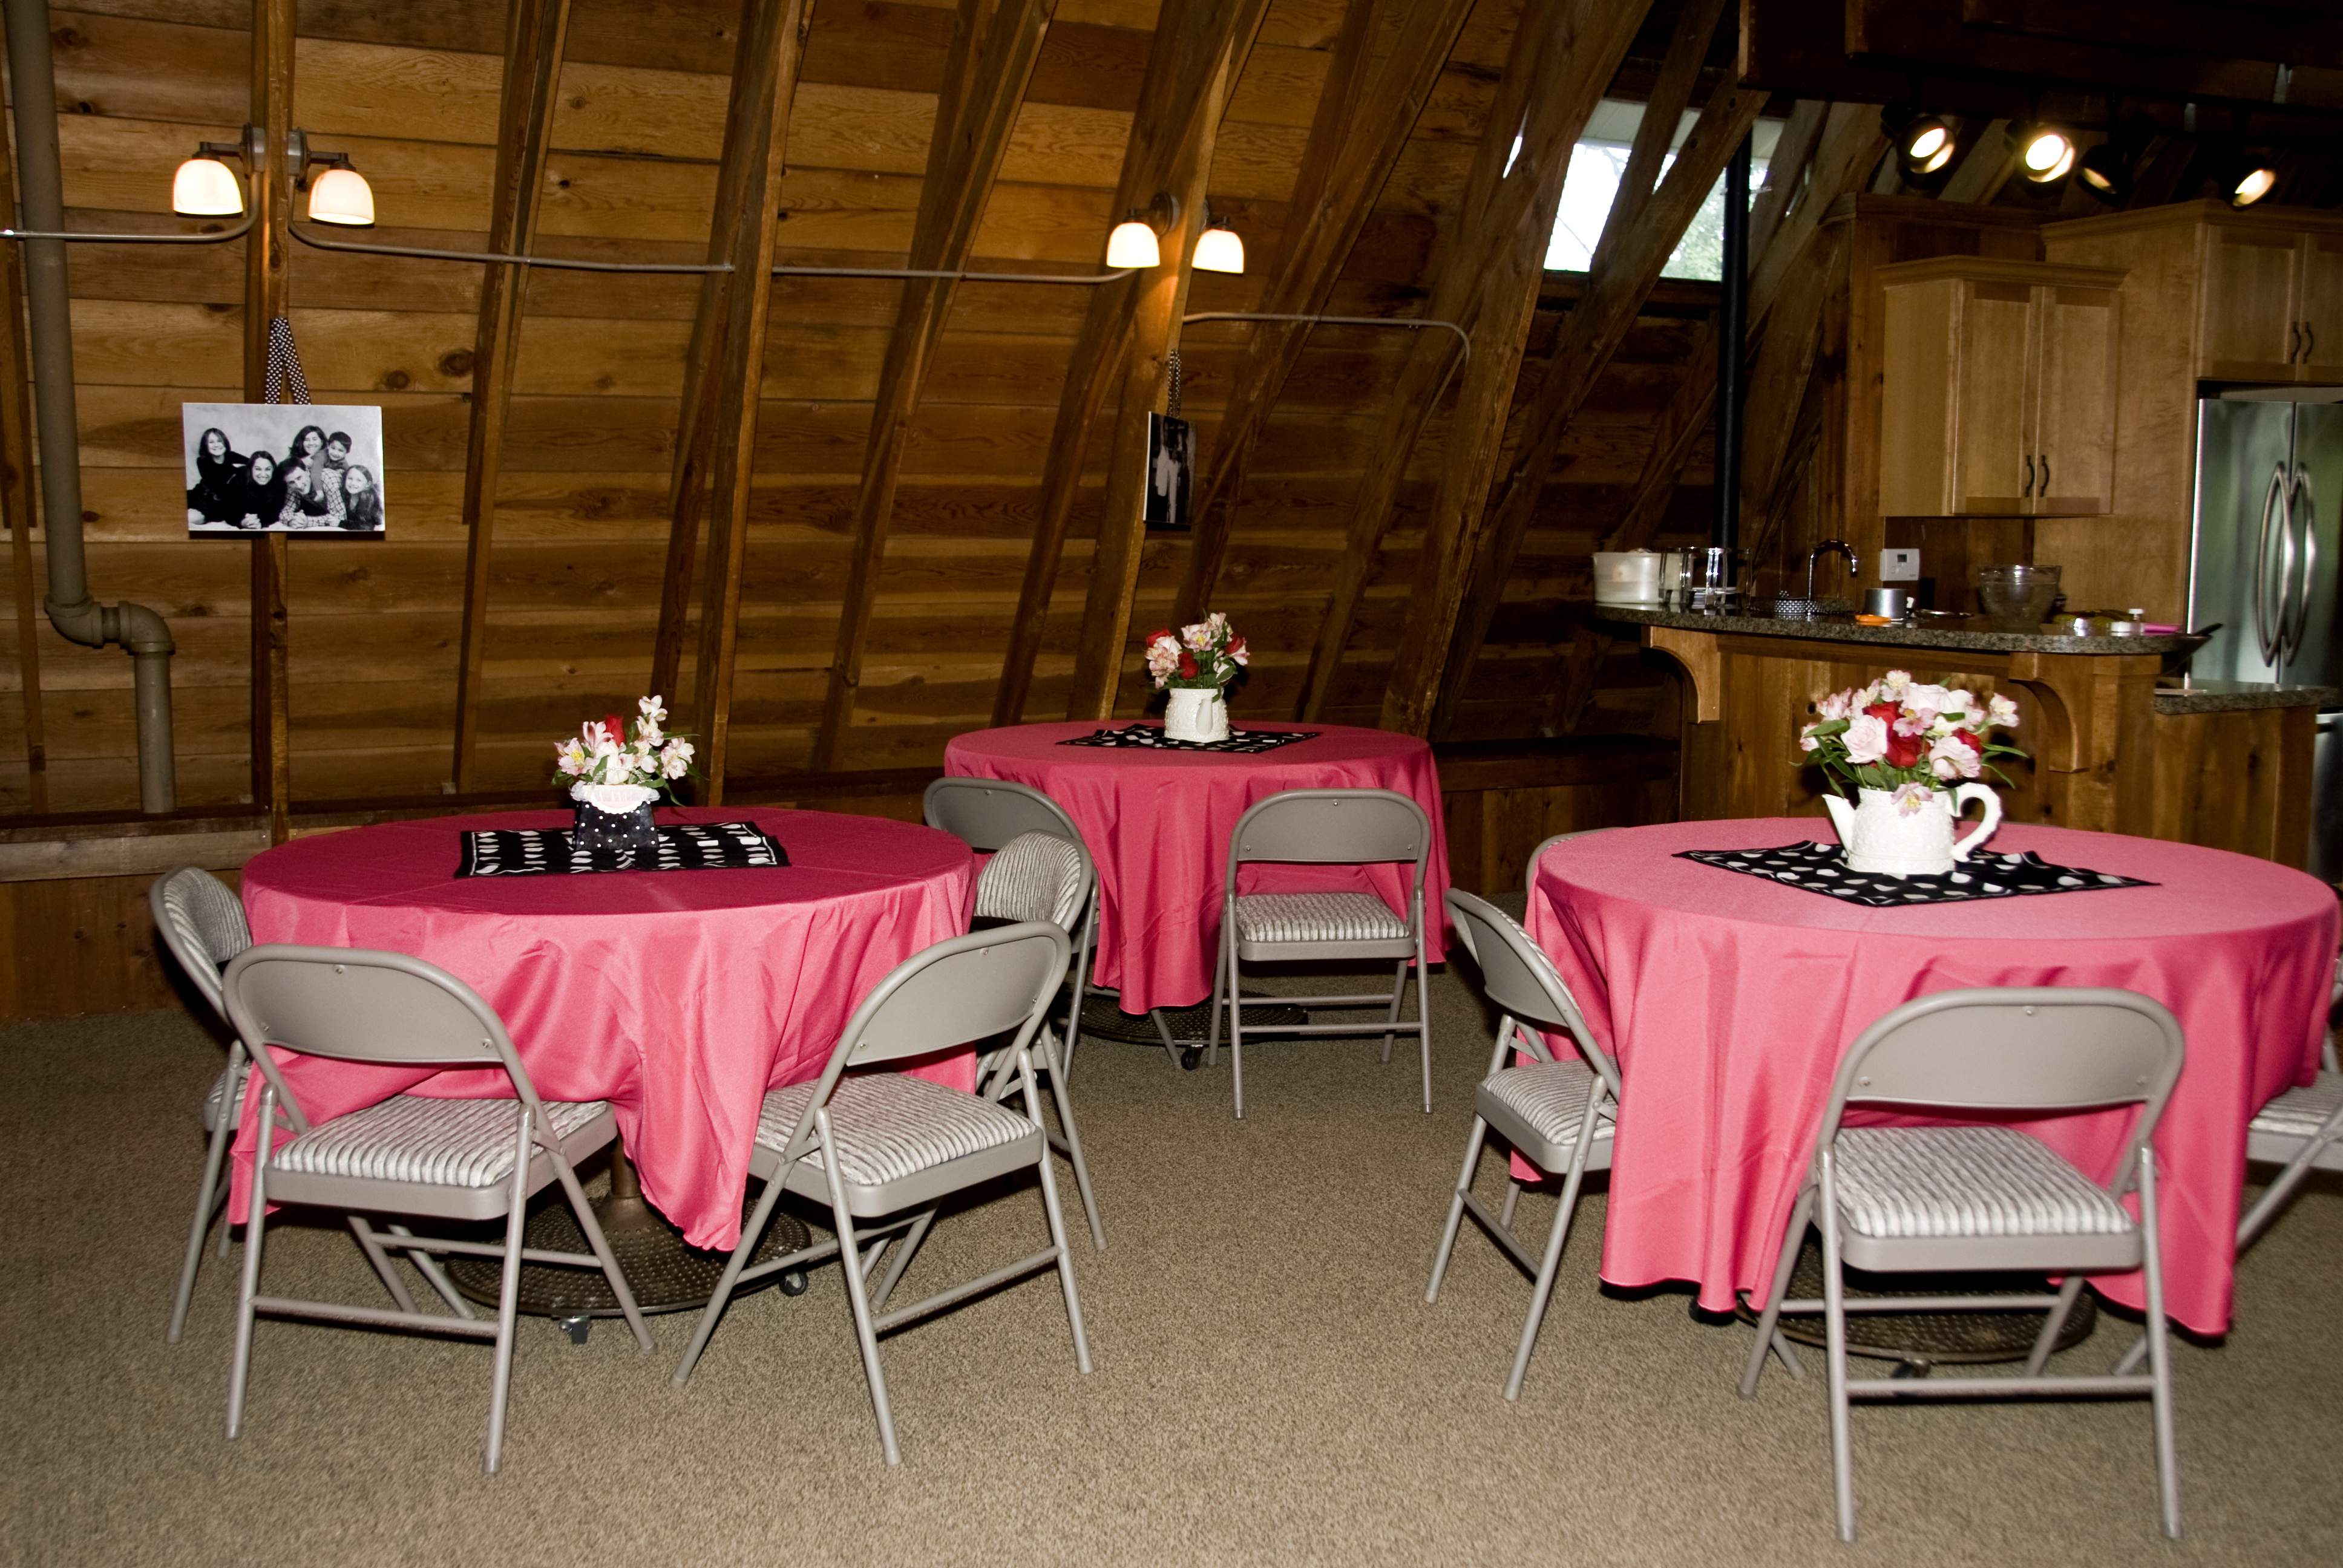 Decorated Tables Partydecorated Tables  Preserve Association